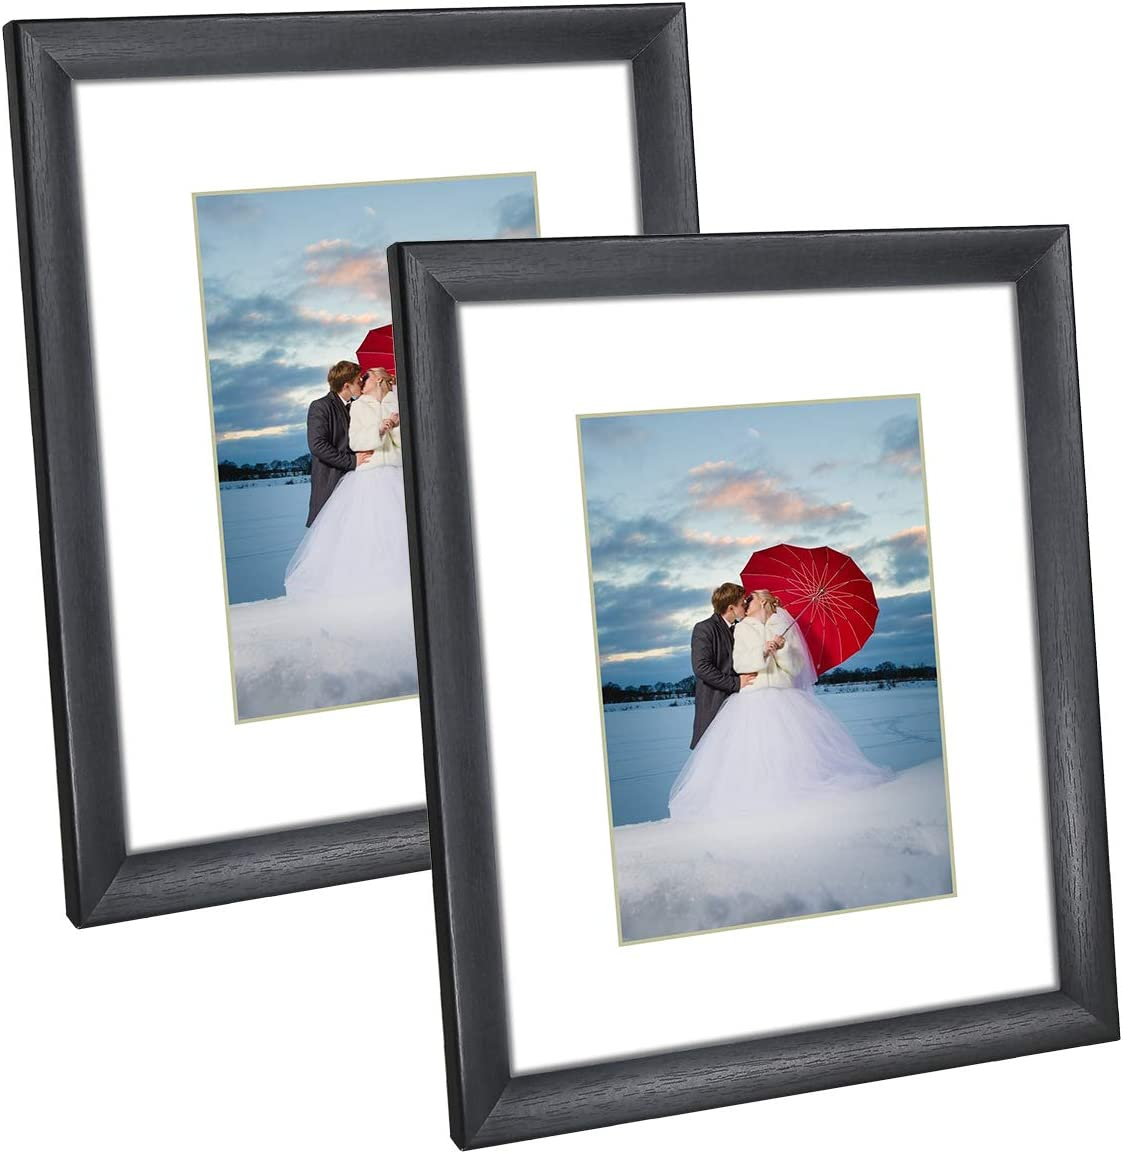 Q.Hou 8x10 Picture Frame Black Photo Frames Set of 2, Display Picture 5x7 with Mat or 8x10 Without Mat for Tabletop or Wall Mount (QH006-PF8X10-BK)